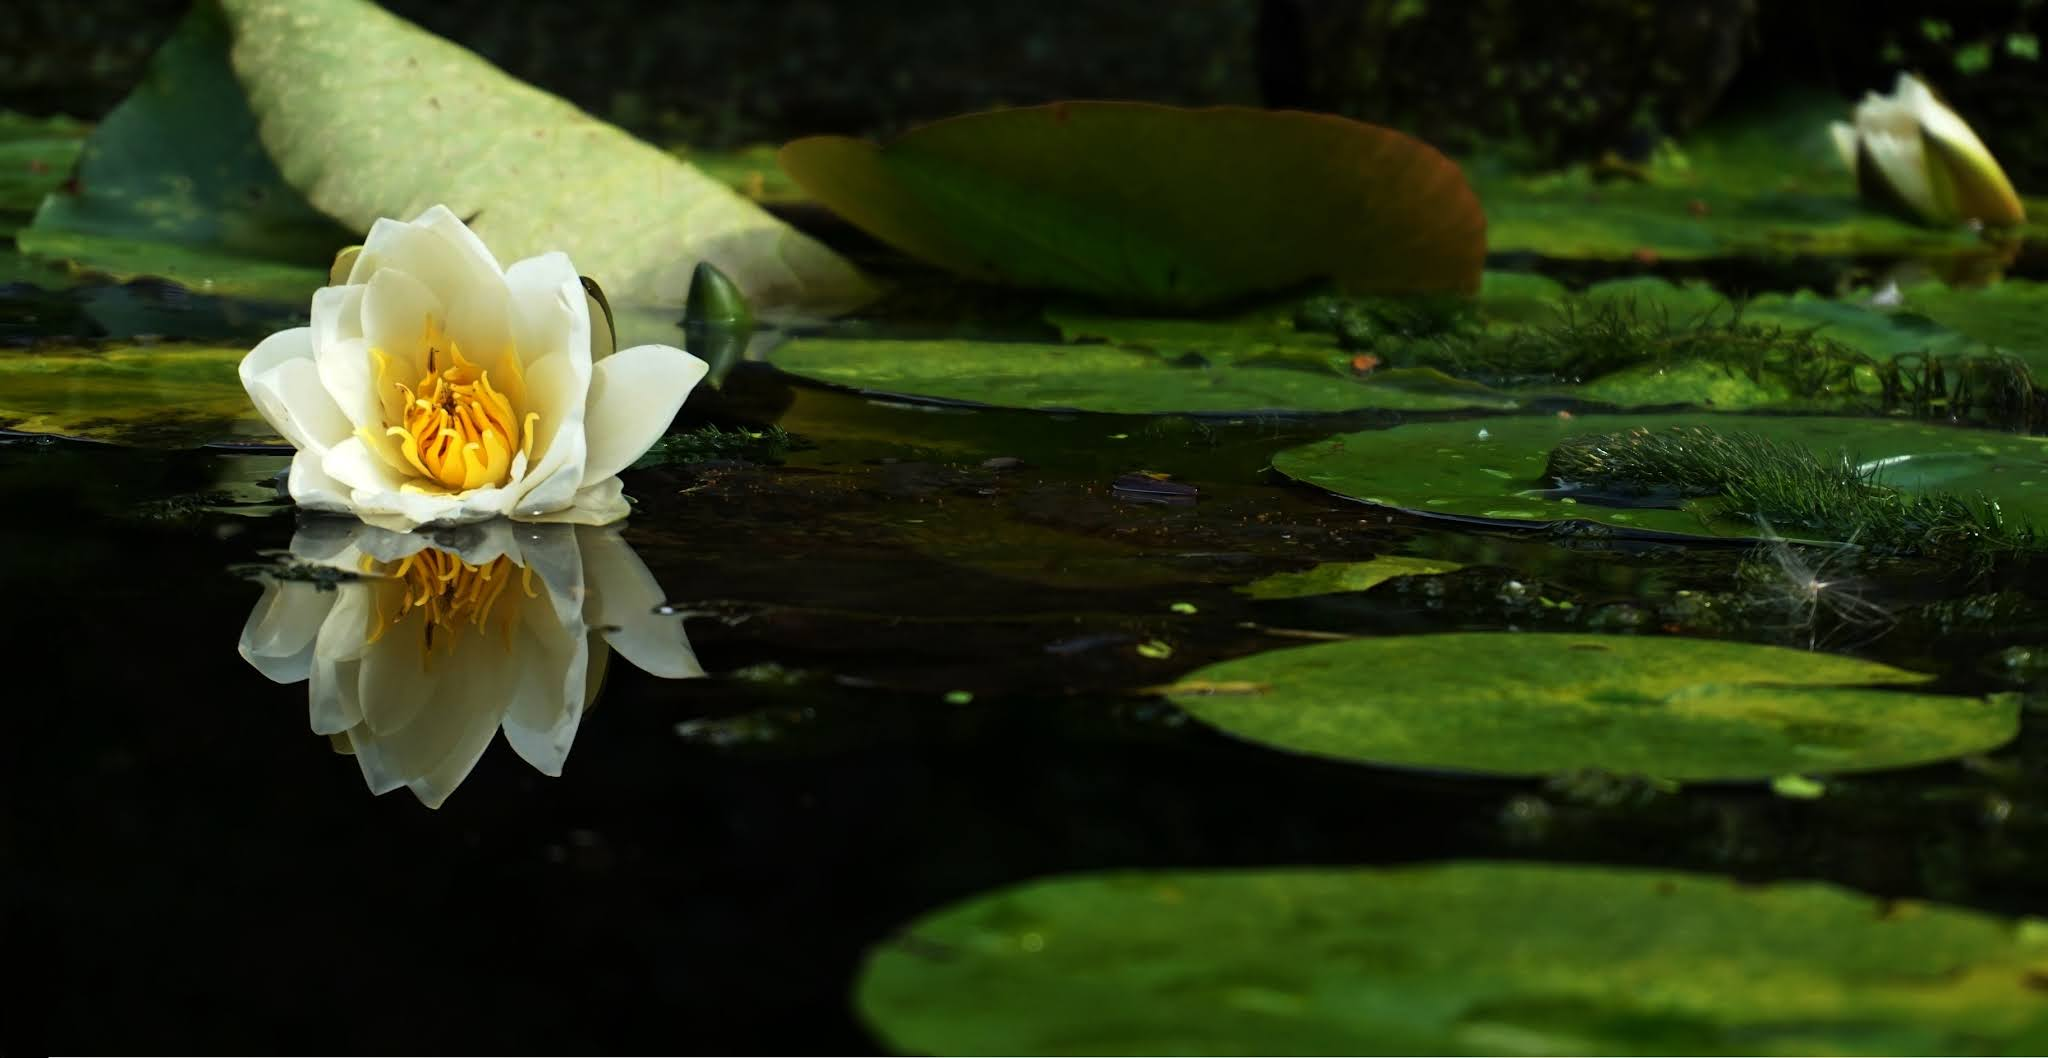 Free stock image by Suzy Hazelwood of a lily flower on a pond from Pexels